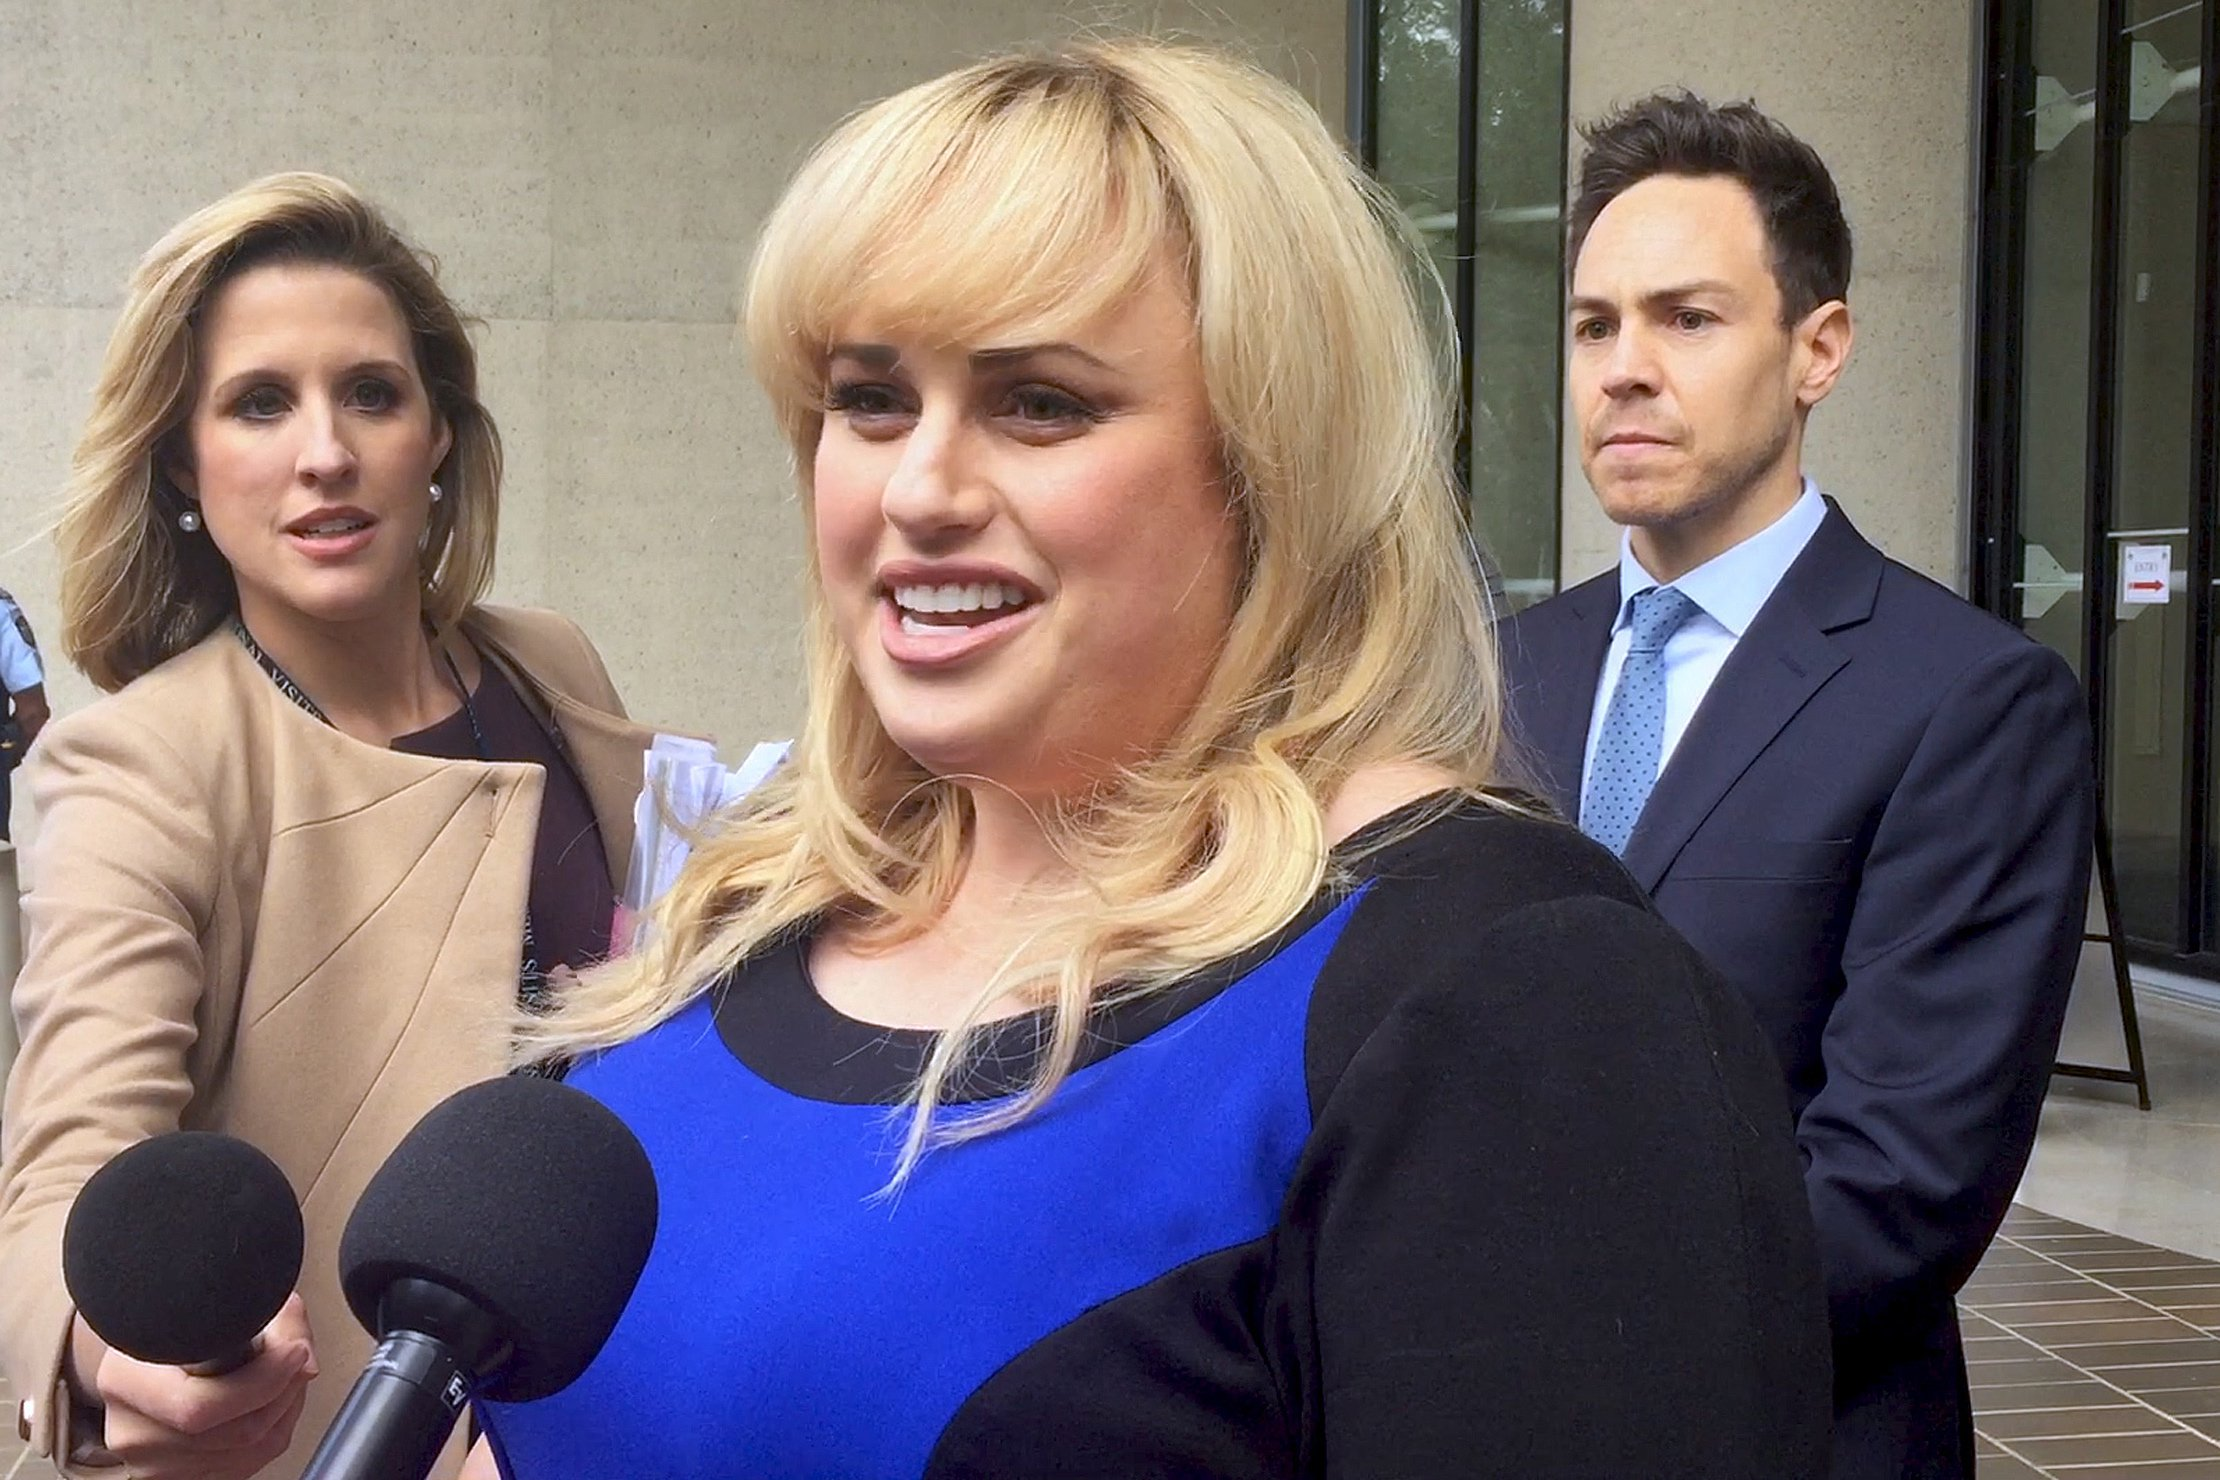 Rebel Wilson loses appeal to reclaim £2.6m defamation payout – but celebrates £340k win